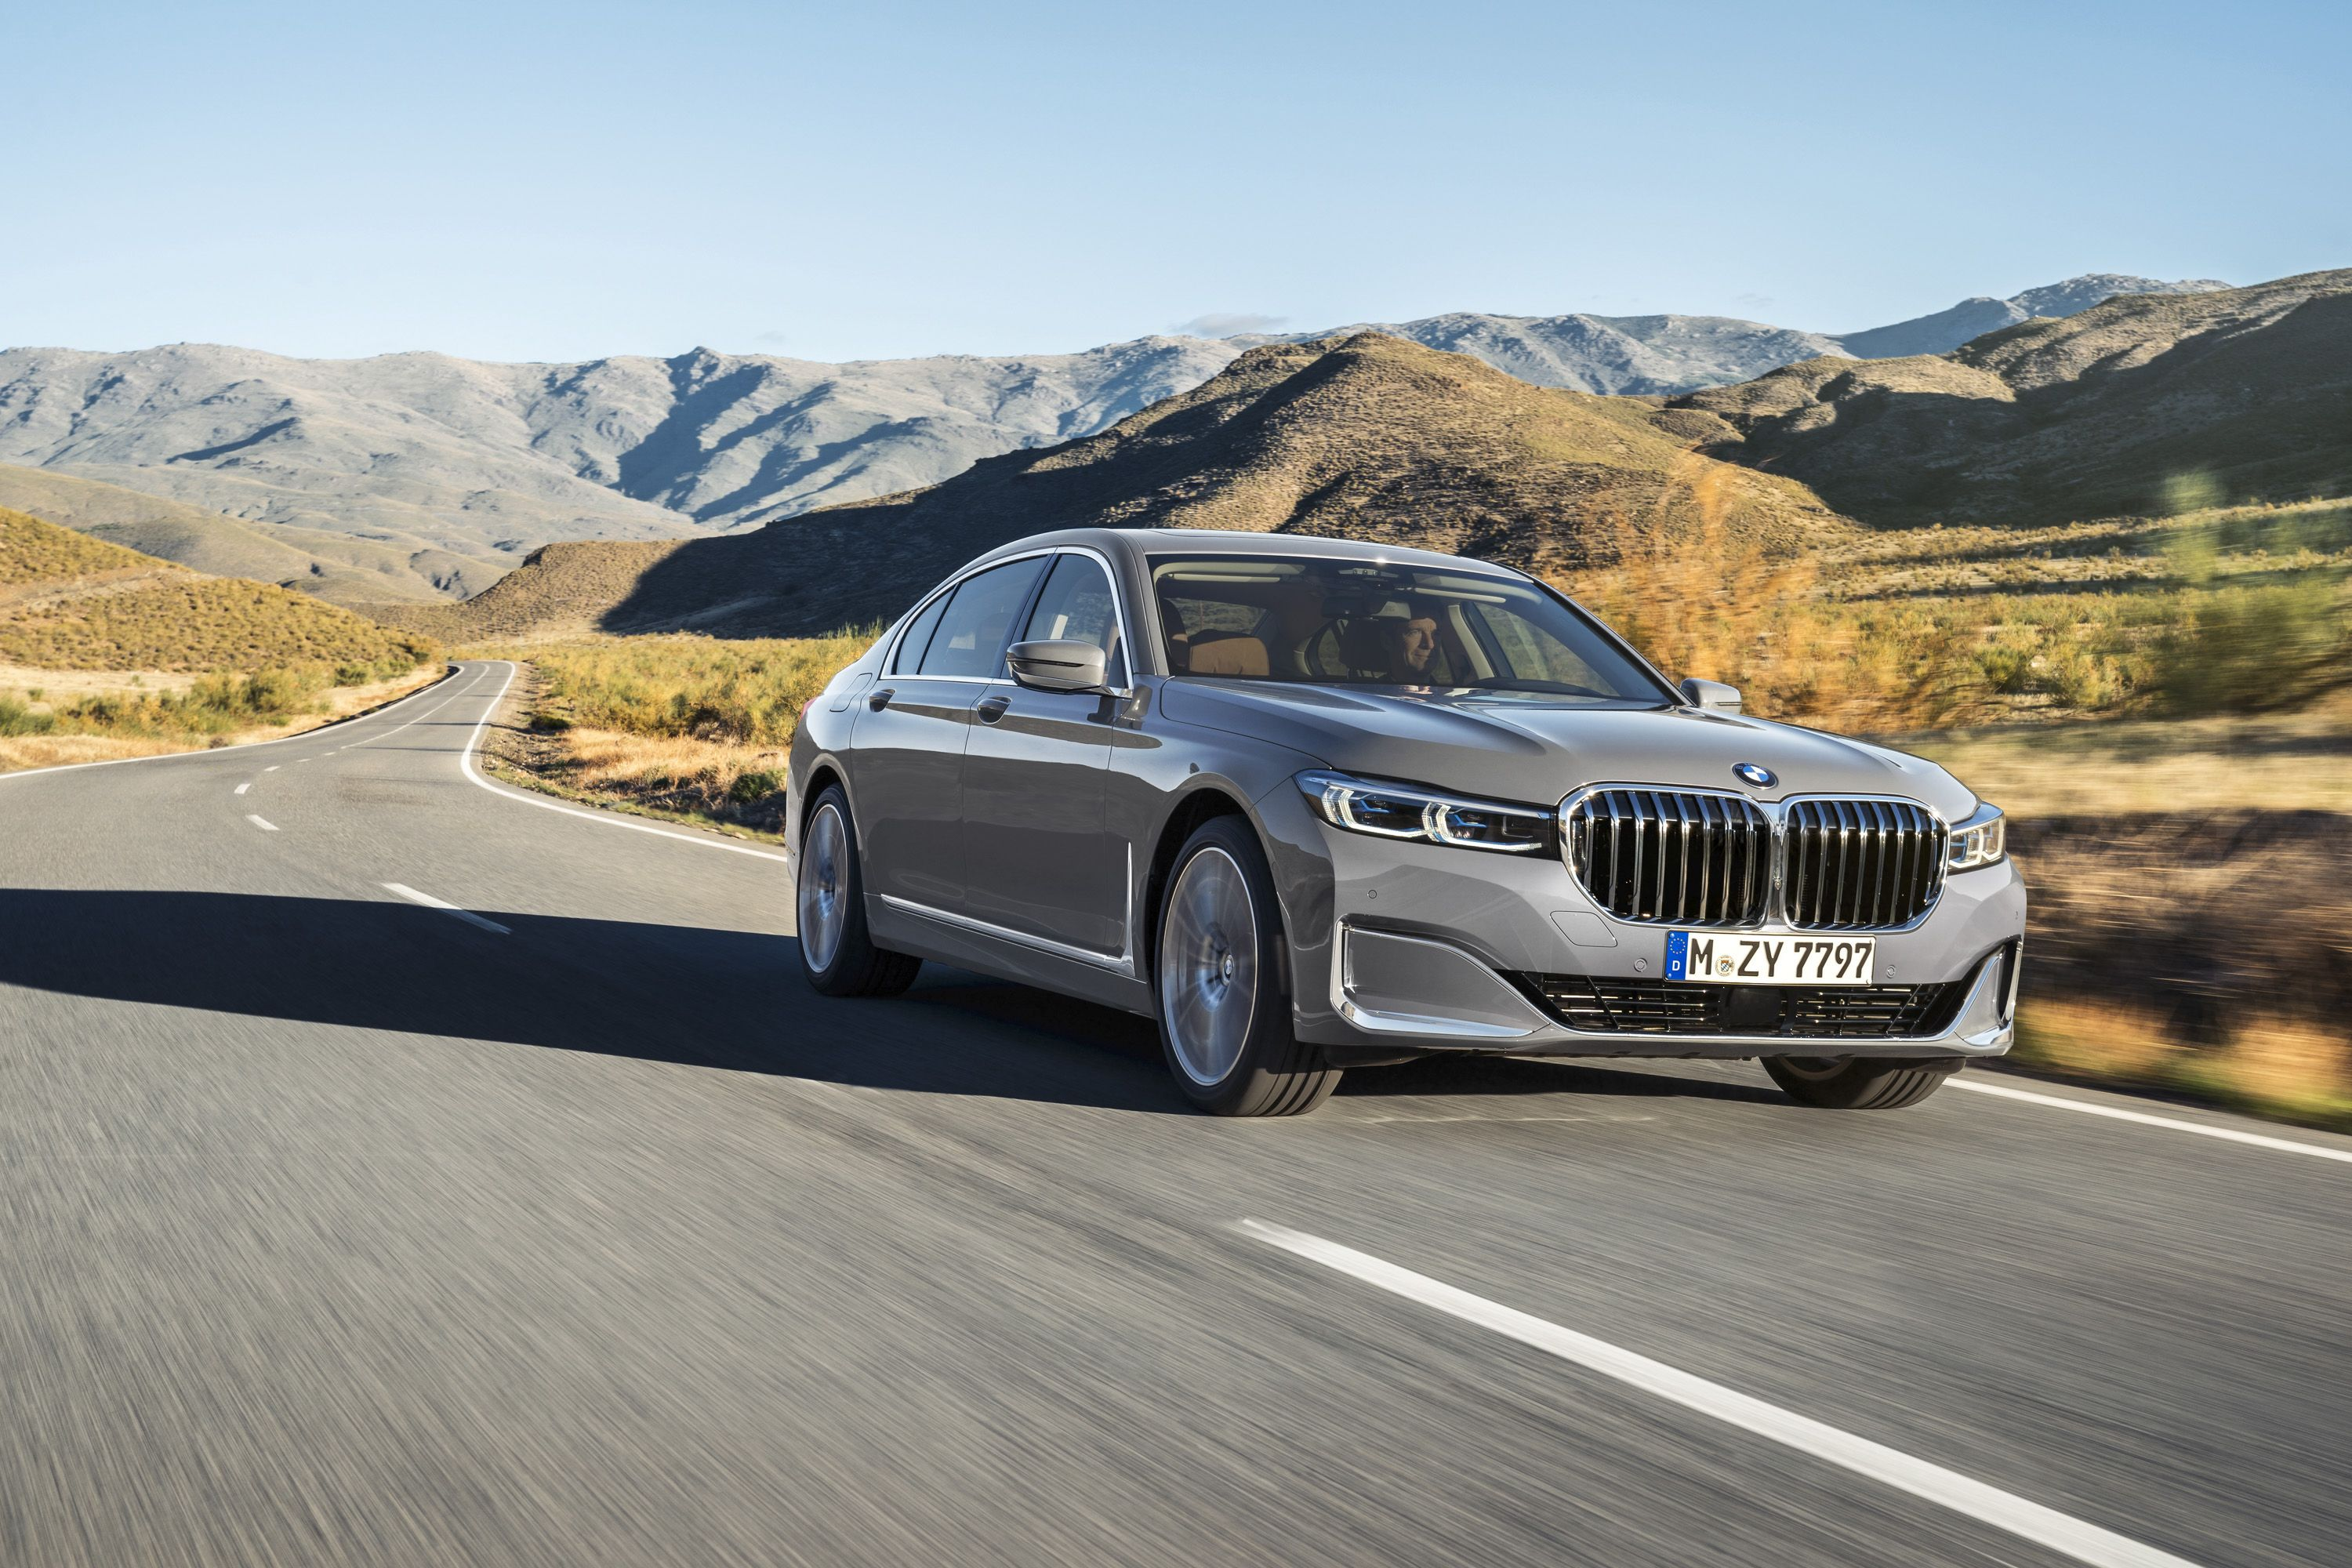 The 2020 Bmw 7 Series Is A Bavarian Tech Fest Bmw 7 Series New